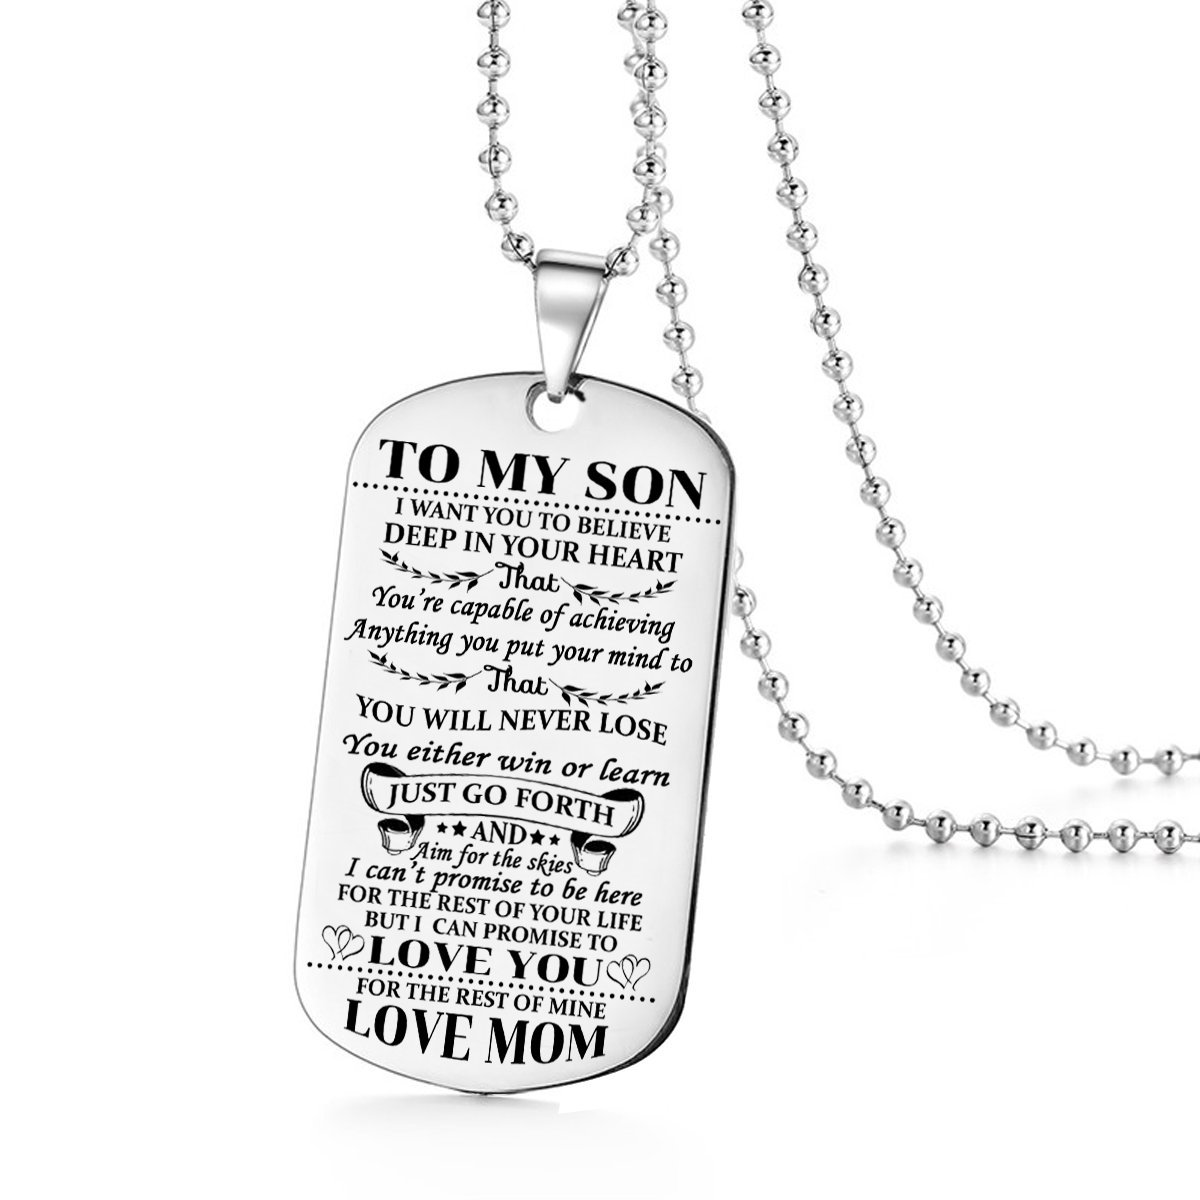 To My Son I Want You To Believe Love Mom Dog Tag Military Air Force Navy Coast Guard Necklace Ball Chain Gift for Best Son Birthday Graduation Stainless Steel